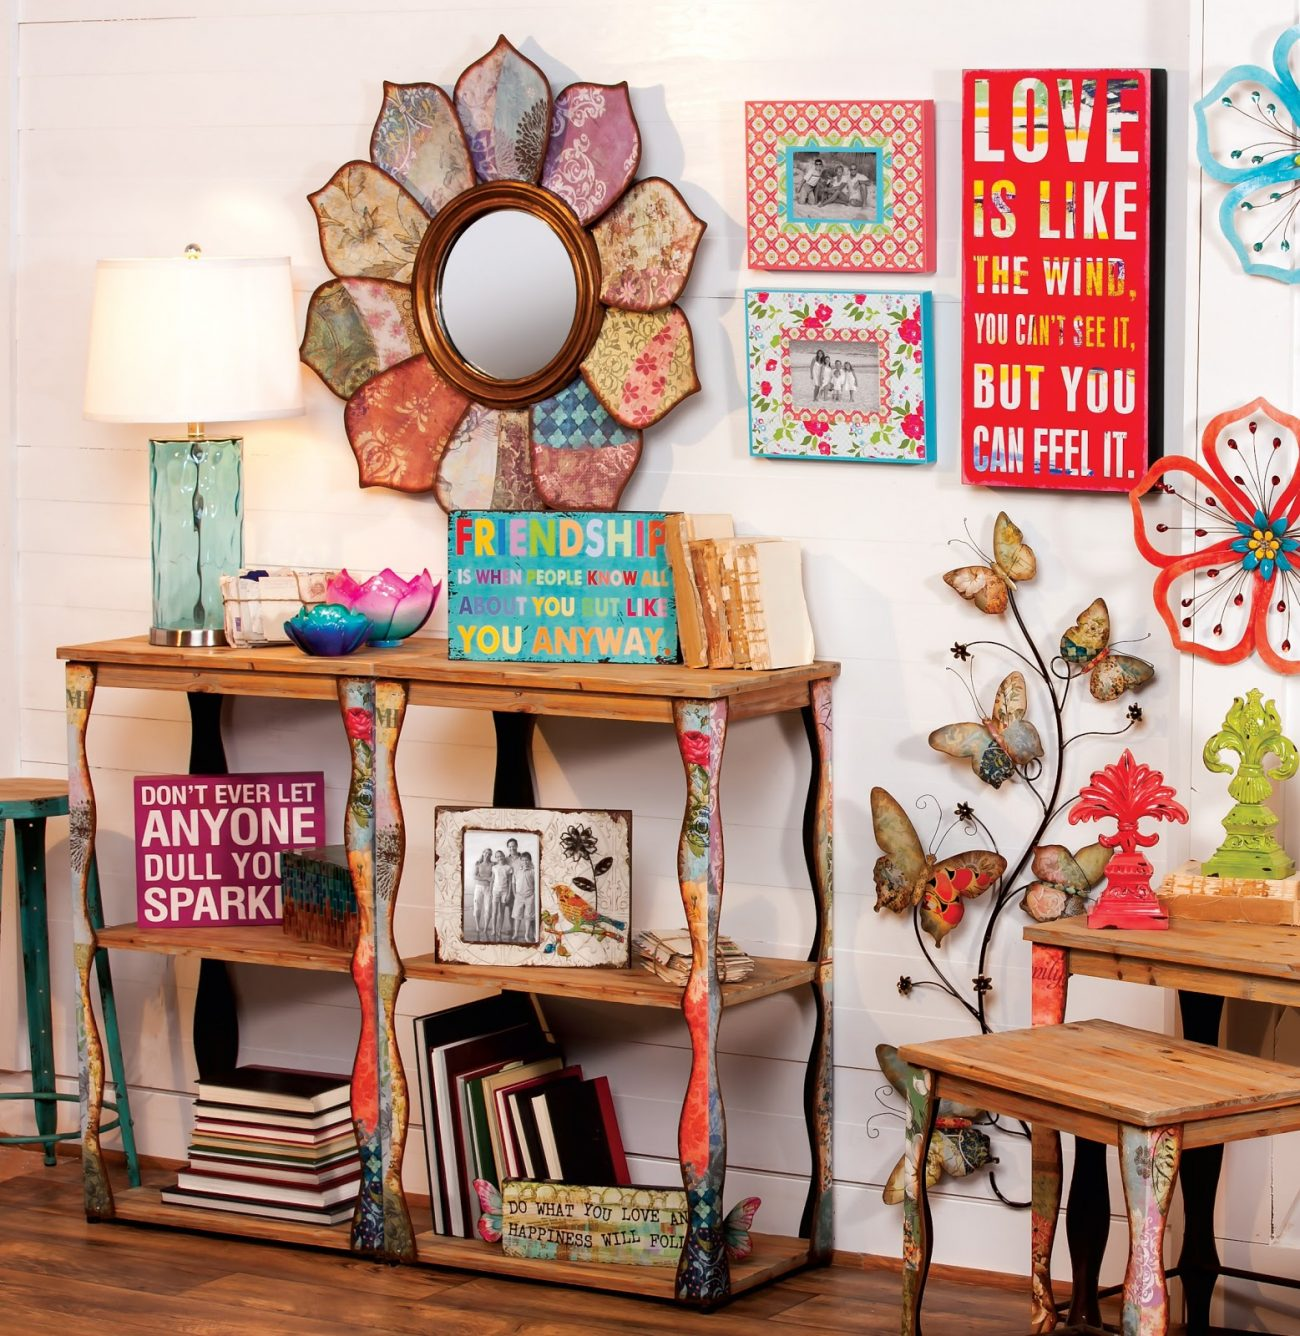 Bohemian Style In Home D    cor     Home Tips Bohemian style is the epitome of creativity and freedom of expression   Artists and unconventional people love it because the general rules of  interior